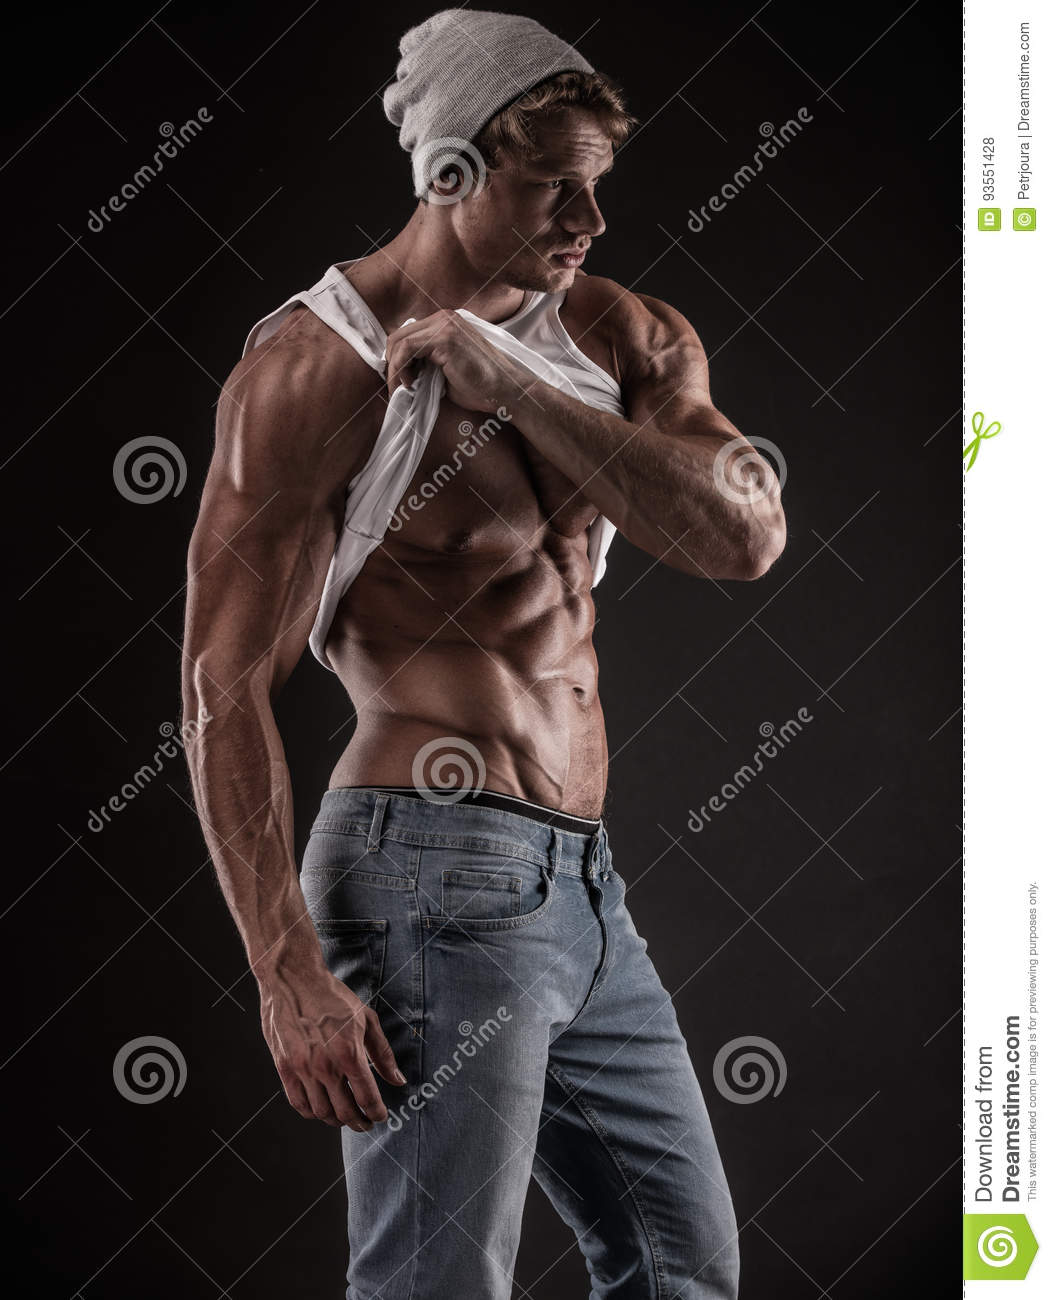 Portrait of strong Athletic Fitness man over black background